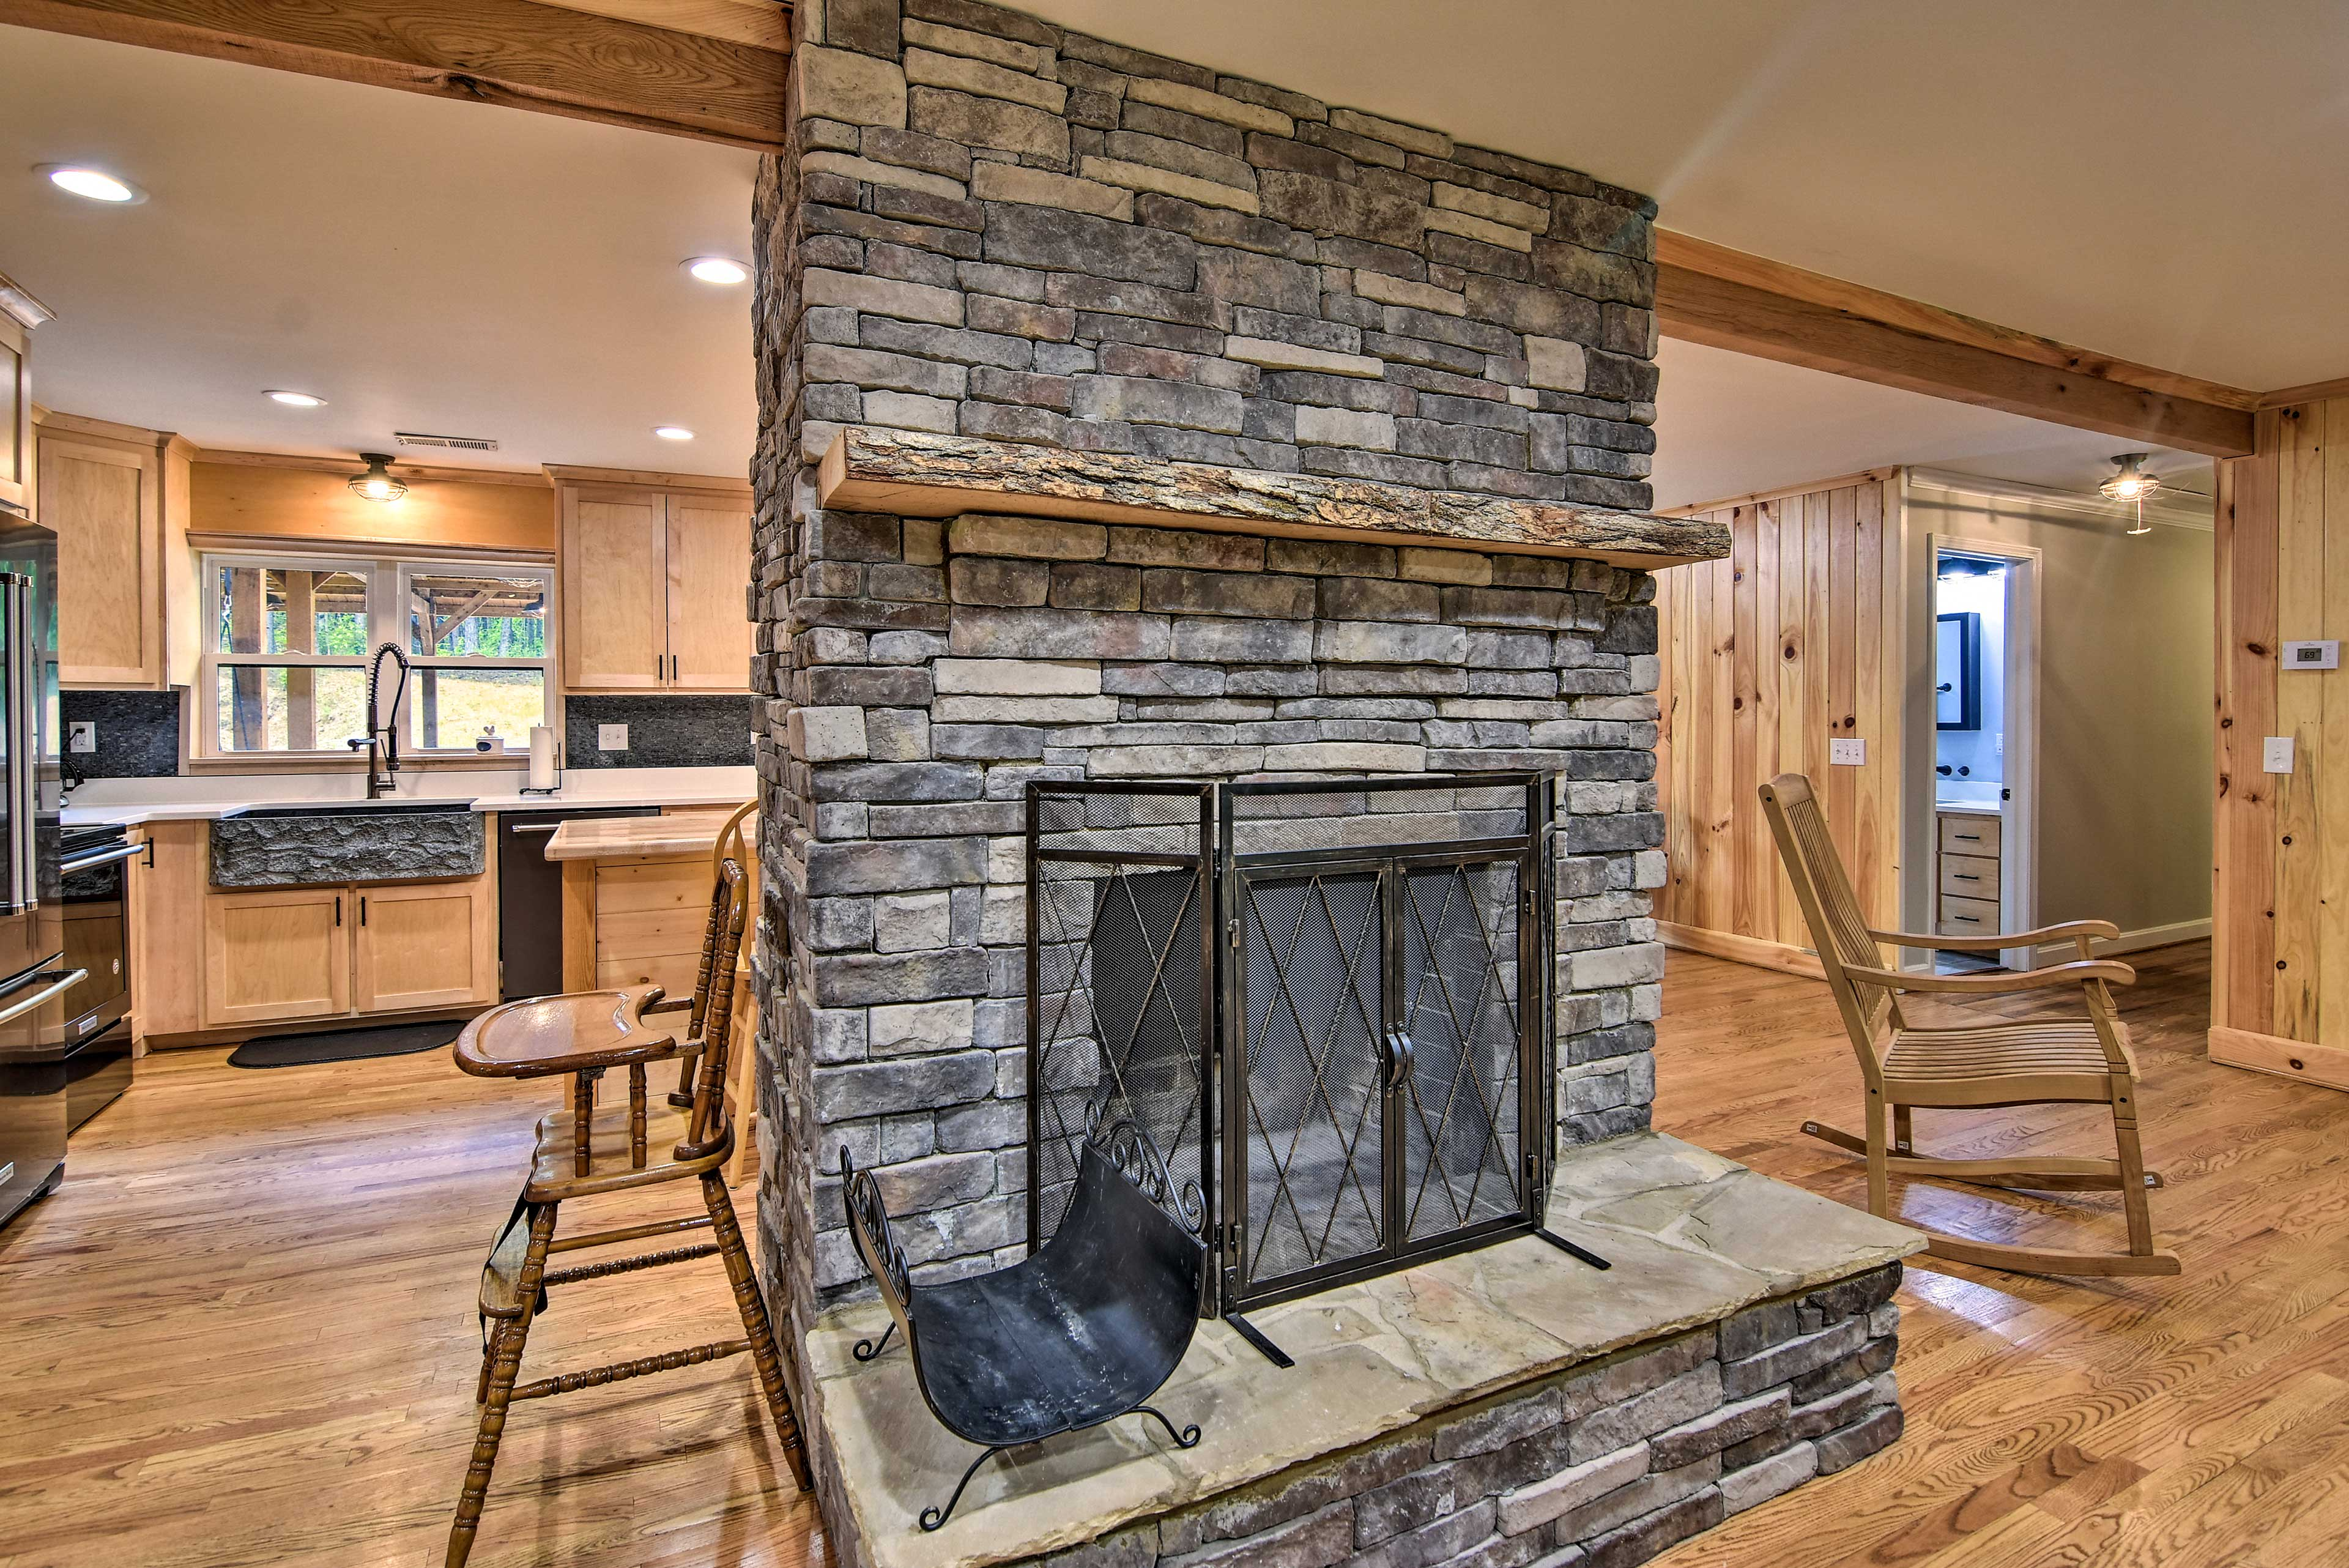 Cozy up next to this gorgeous fireplace!